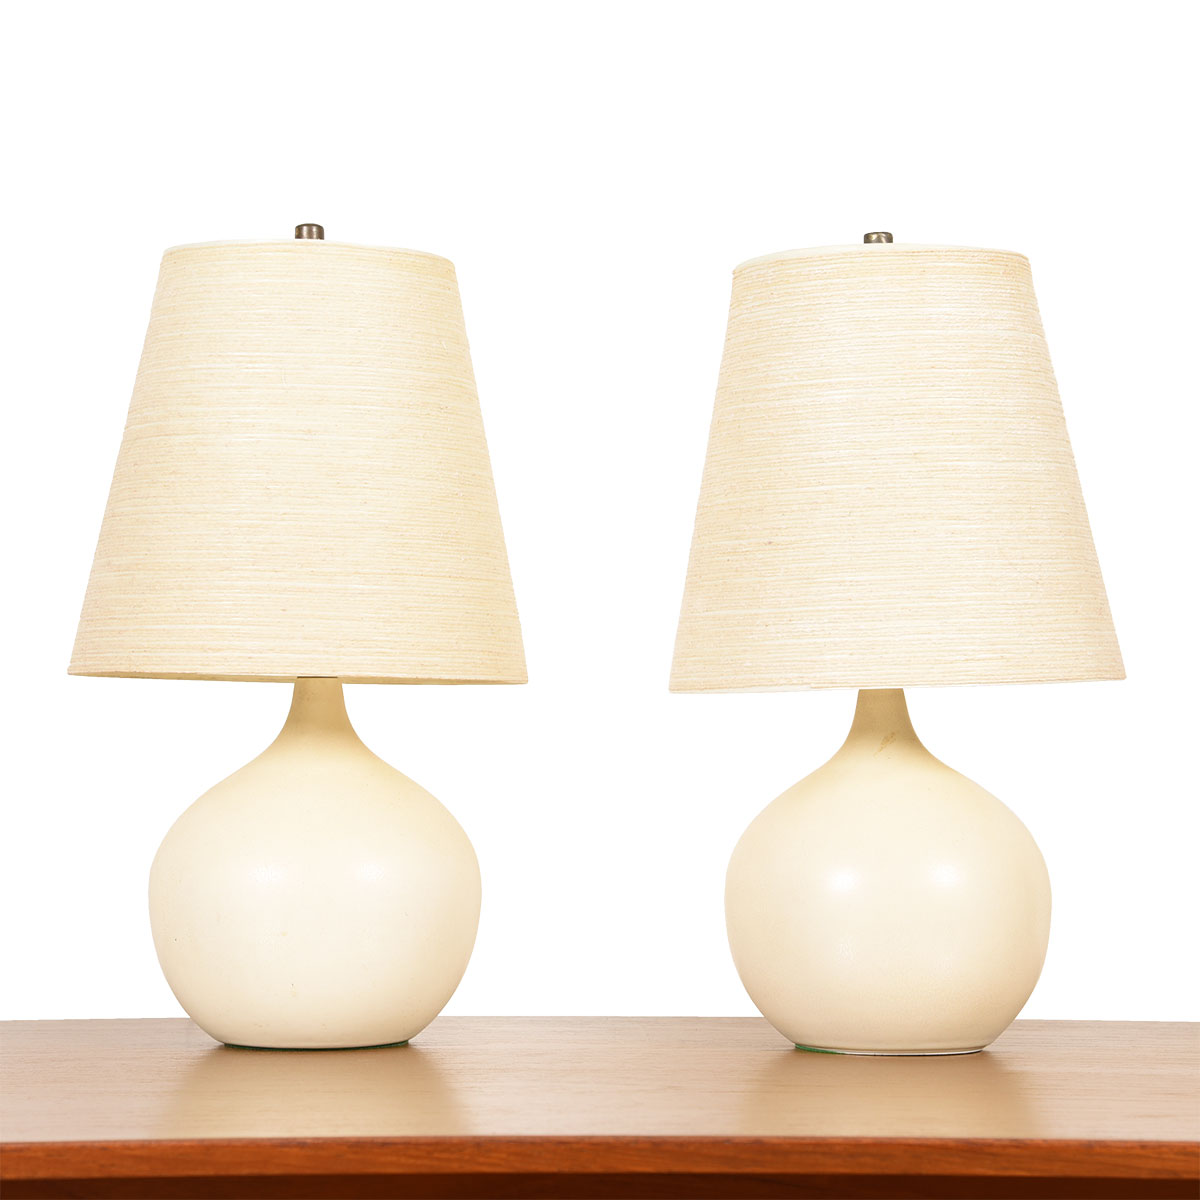 Pair of Small Round Bostlund Lamps w/ Original Fiberglass Shades